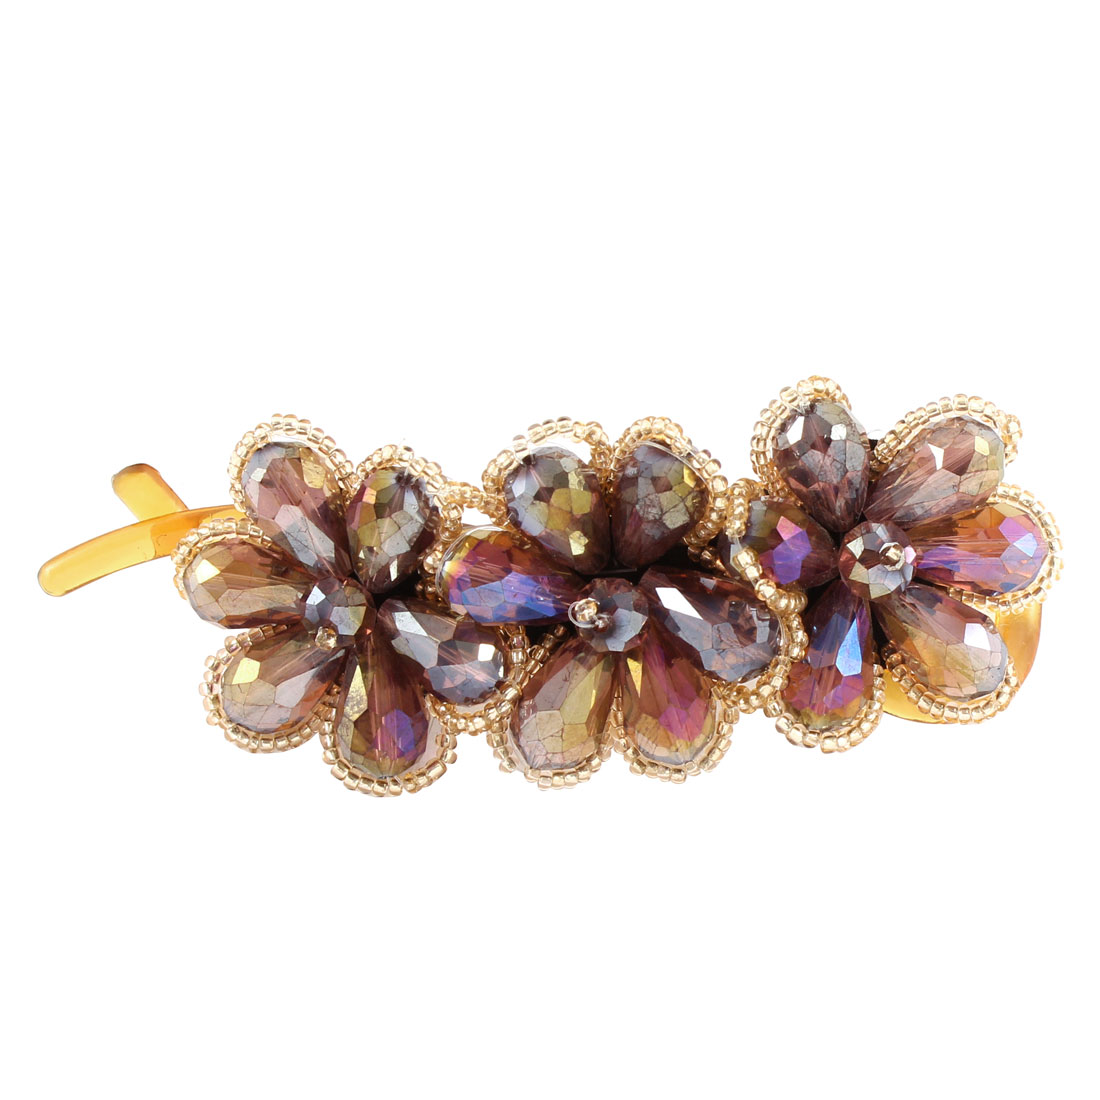 Lady Hairstyle Purple Crystal Flower Shaped Brown Banana Barrette Hairpin Hair Clips Clasp Decoration